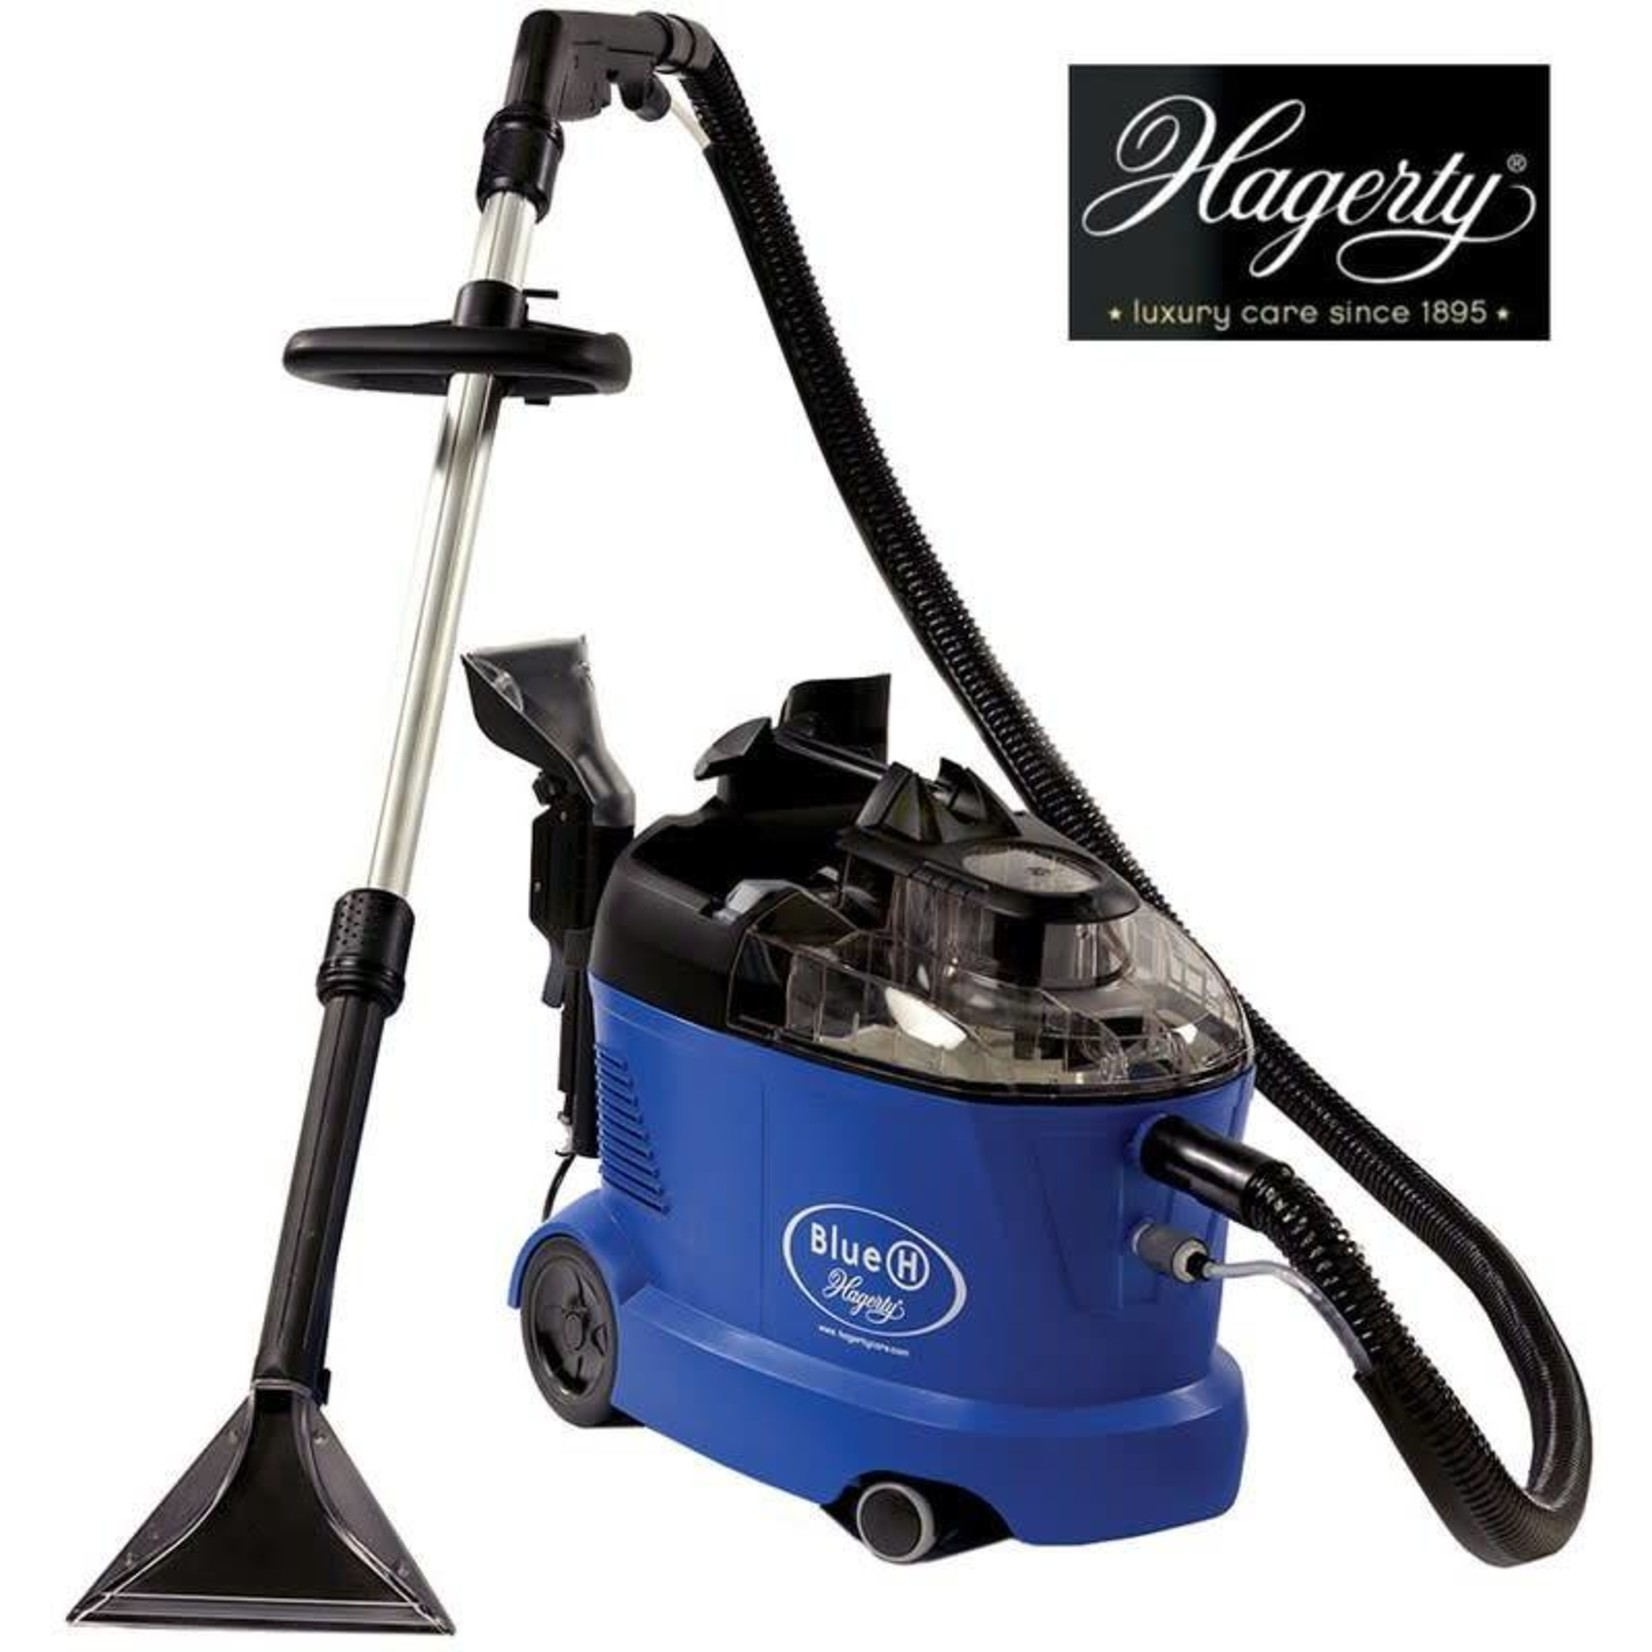 Hagerty Carpet Cleaner Hire